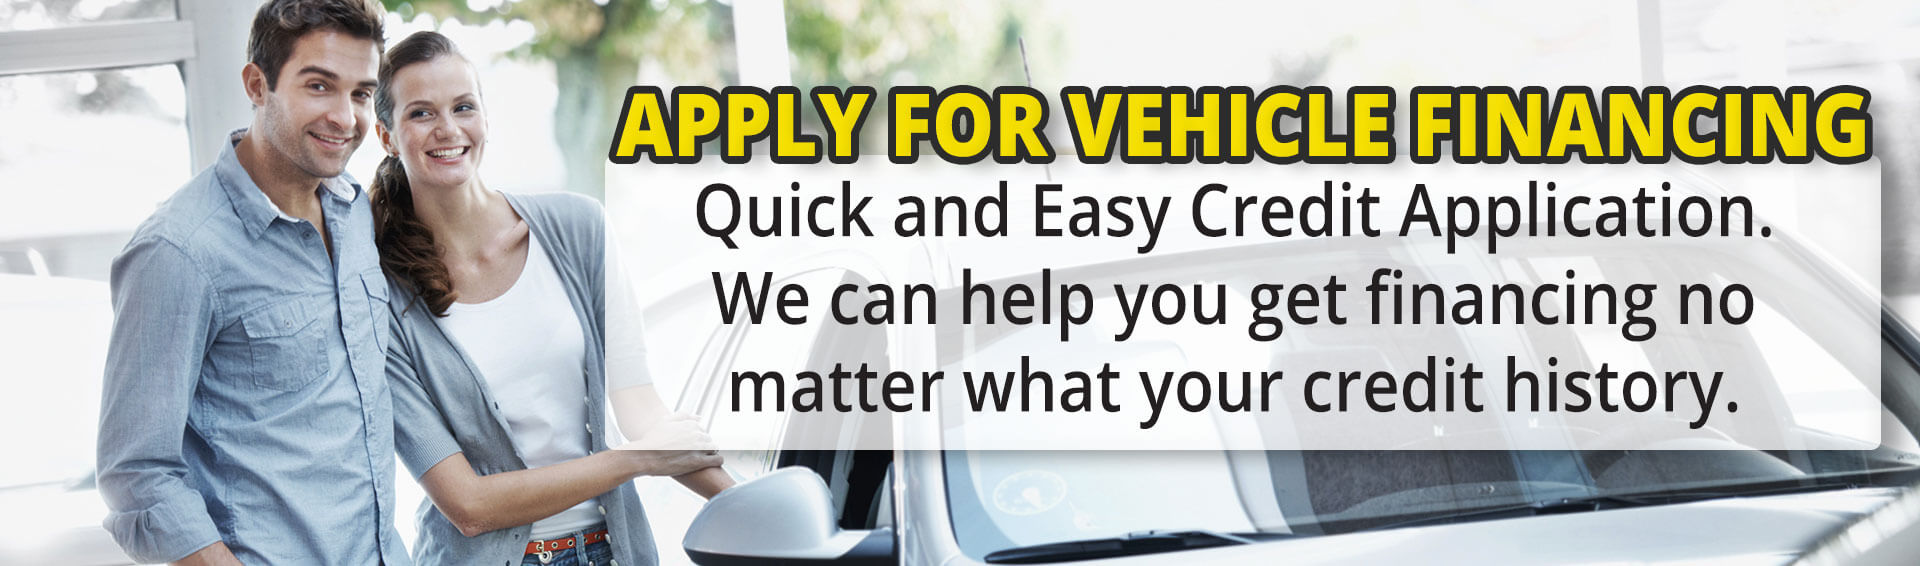 Apply for Vehicle Financing